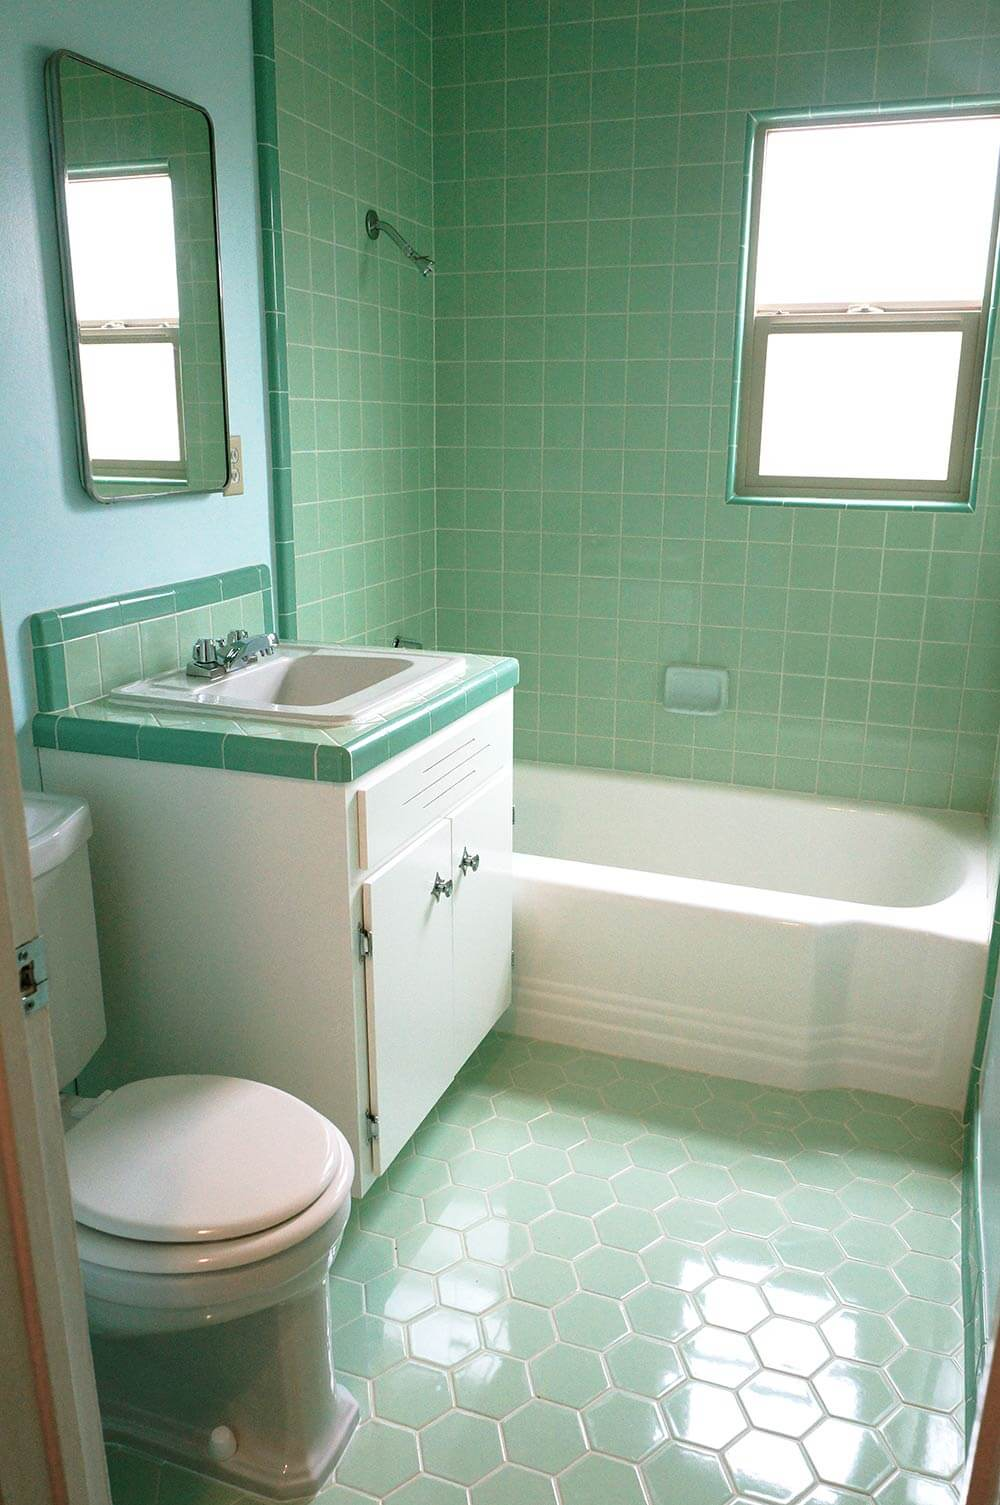 Tremendous The Color Green In Kitchen And Bathroom Sinks Tubs And Interior Design Ideas Gentotryabchikinfo